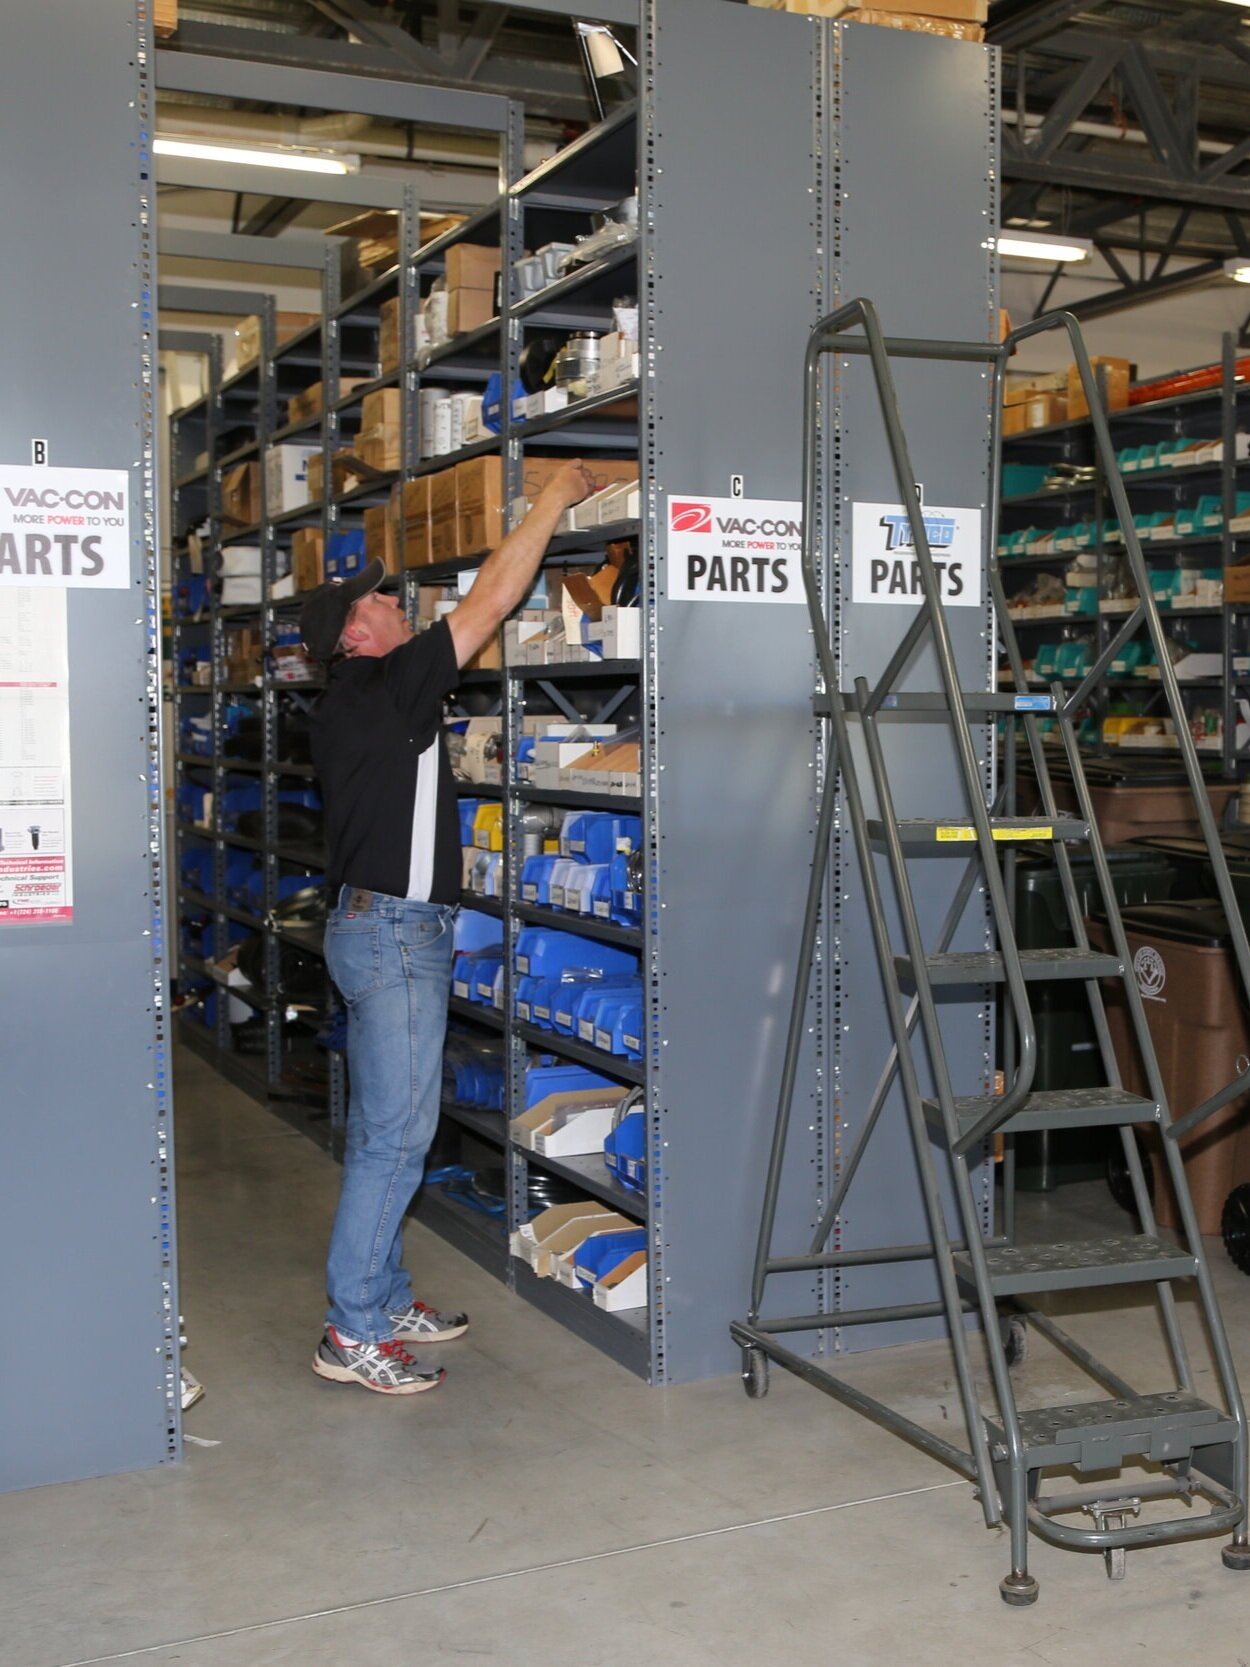 Parts Expertise You Can Count On - We keep high wear parts in stock, ready to ship to you. Looking for something unusual? Need help solving your parts issue? Our parts experts can help you assess your situation and get you back up and running. Our in stock parts ship next day via UPS.We're here to help.